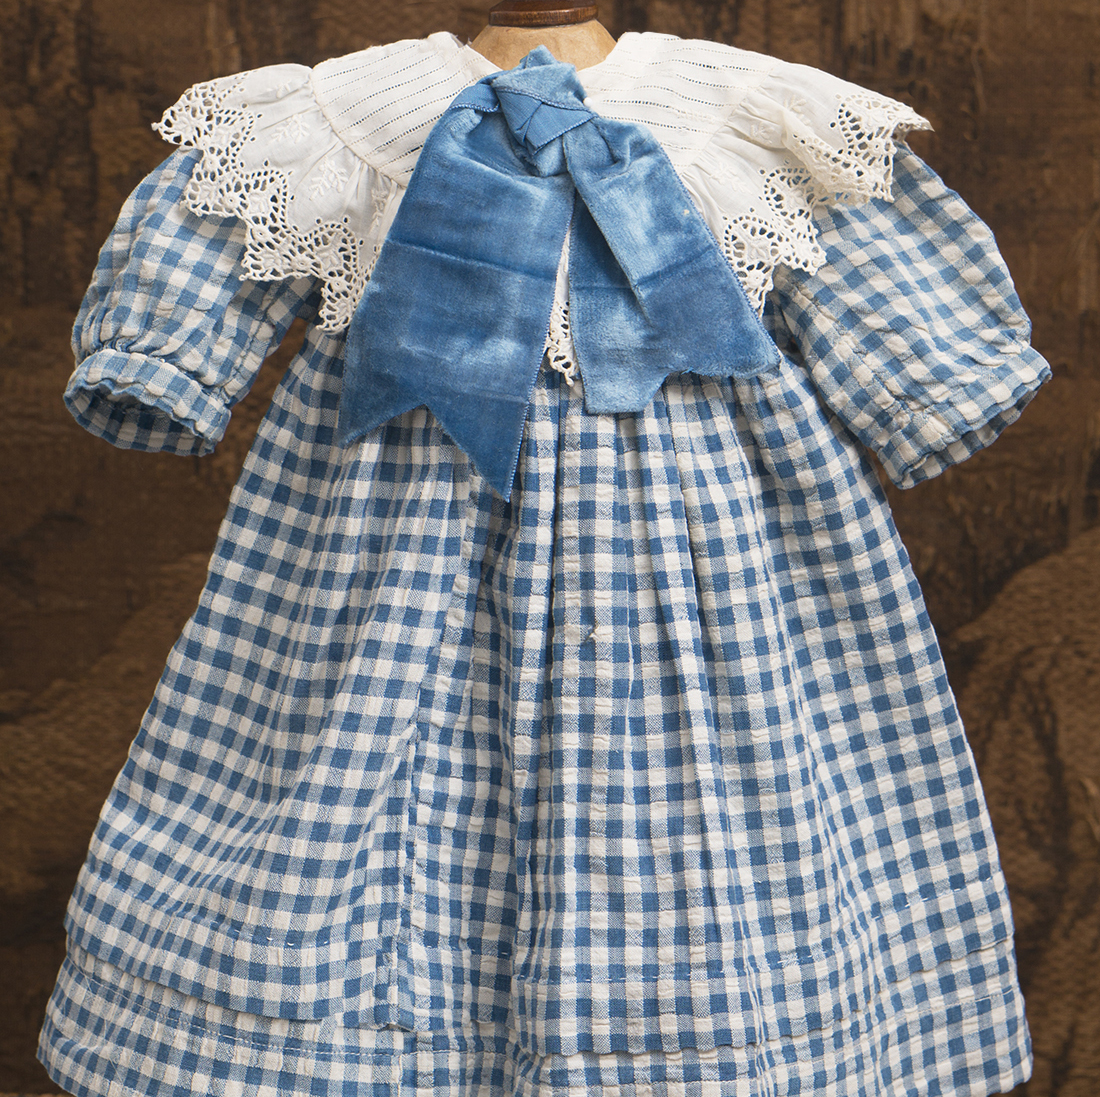 Antique Original Checkered dress